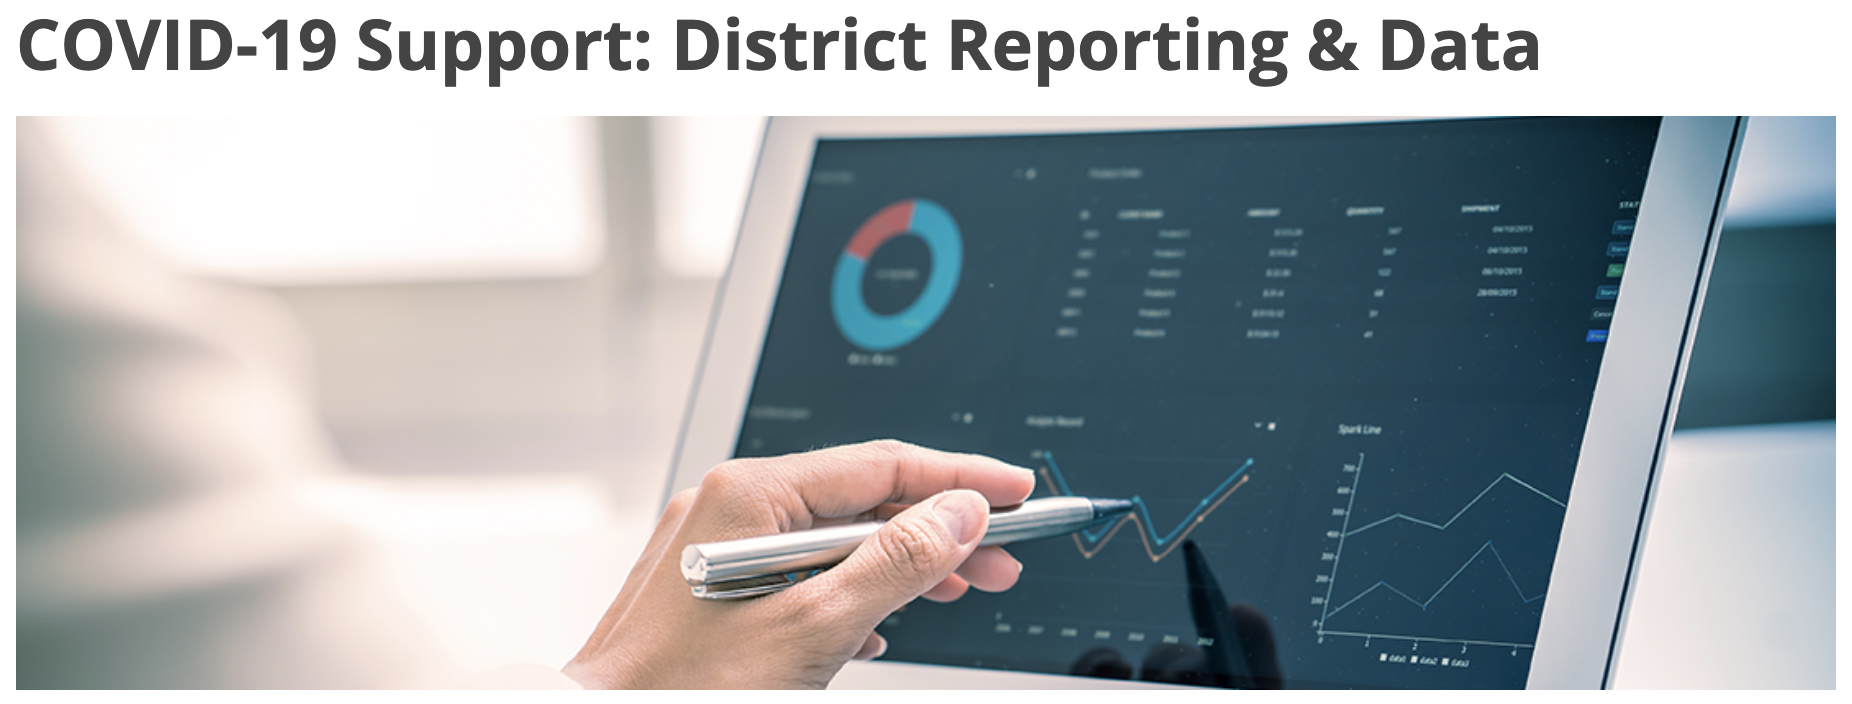 COVID-19 Support: District Reporting & Data